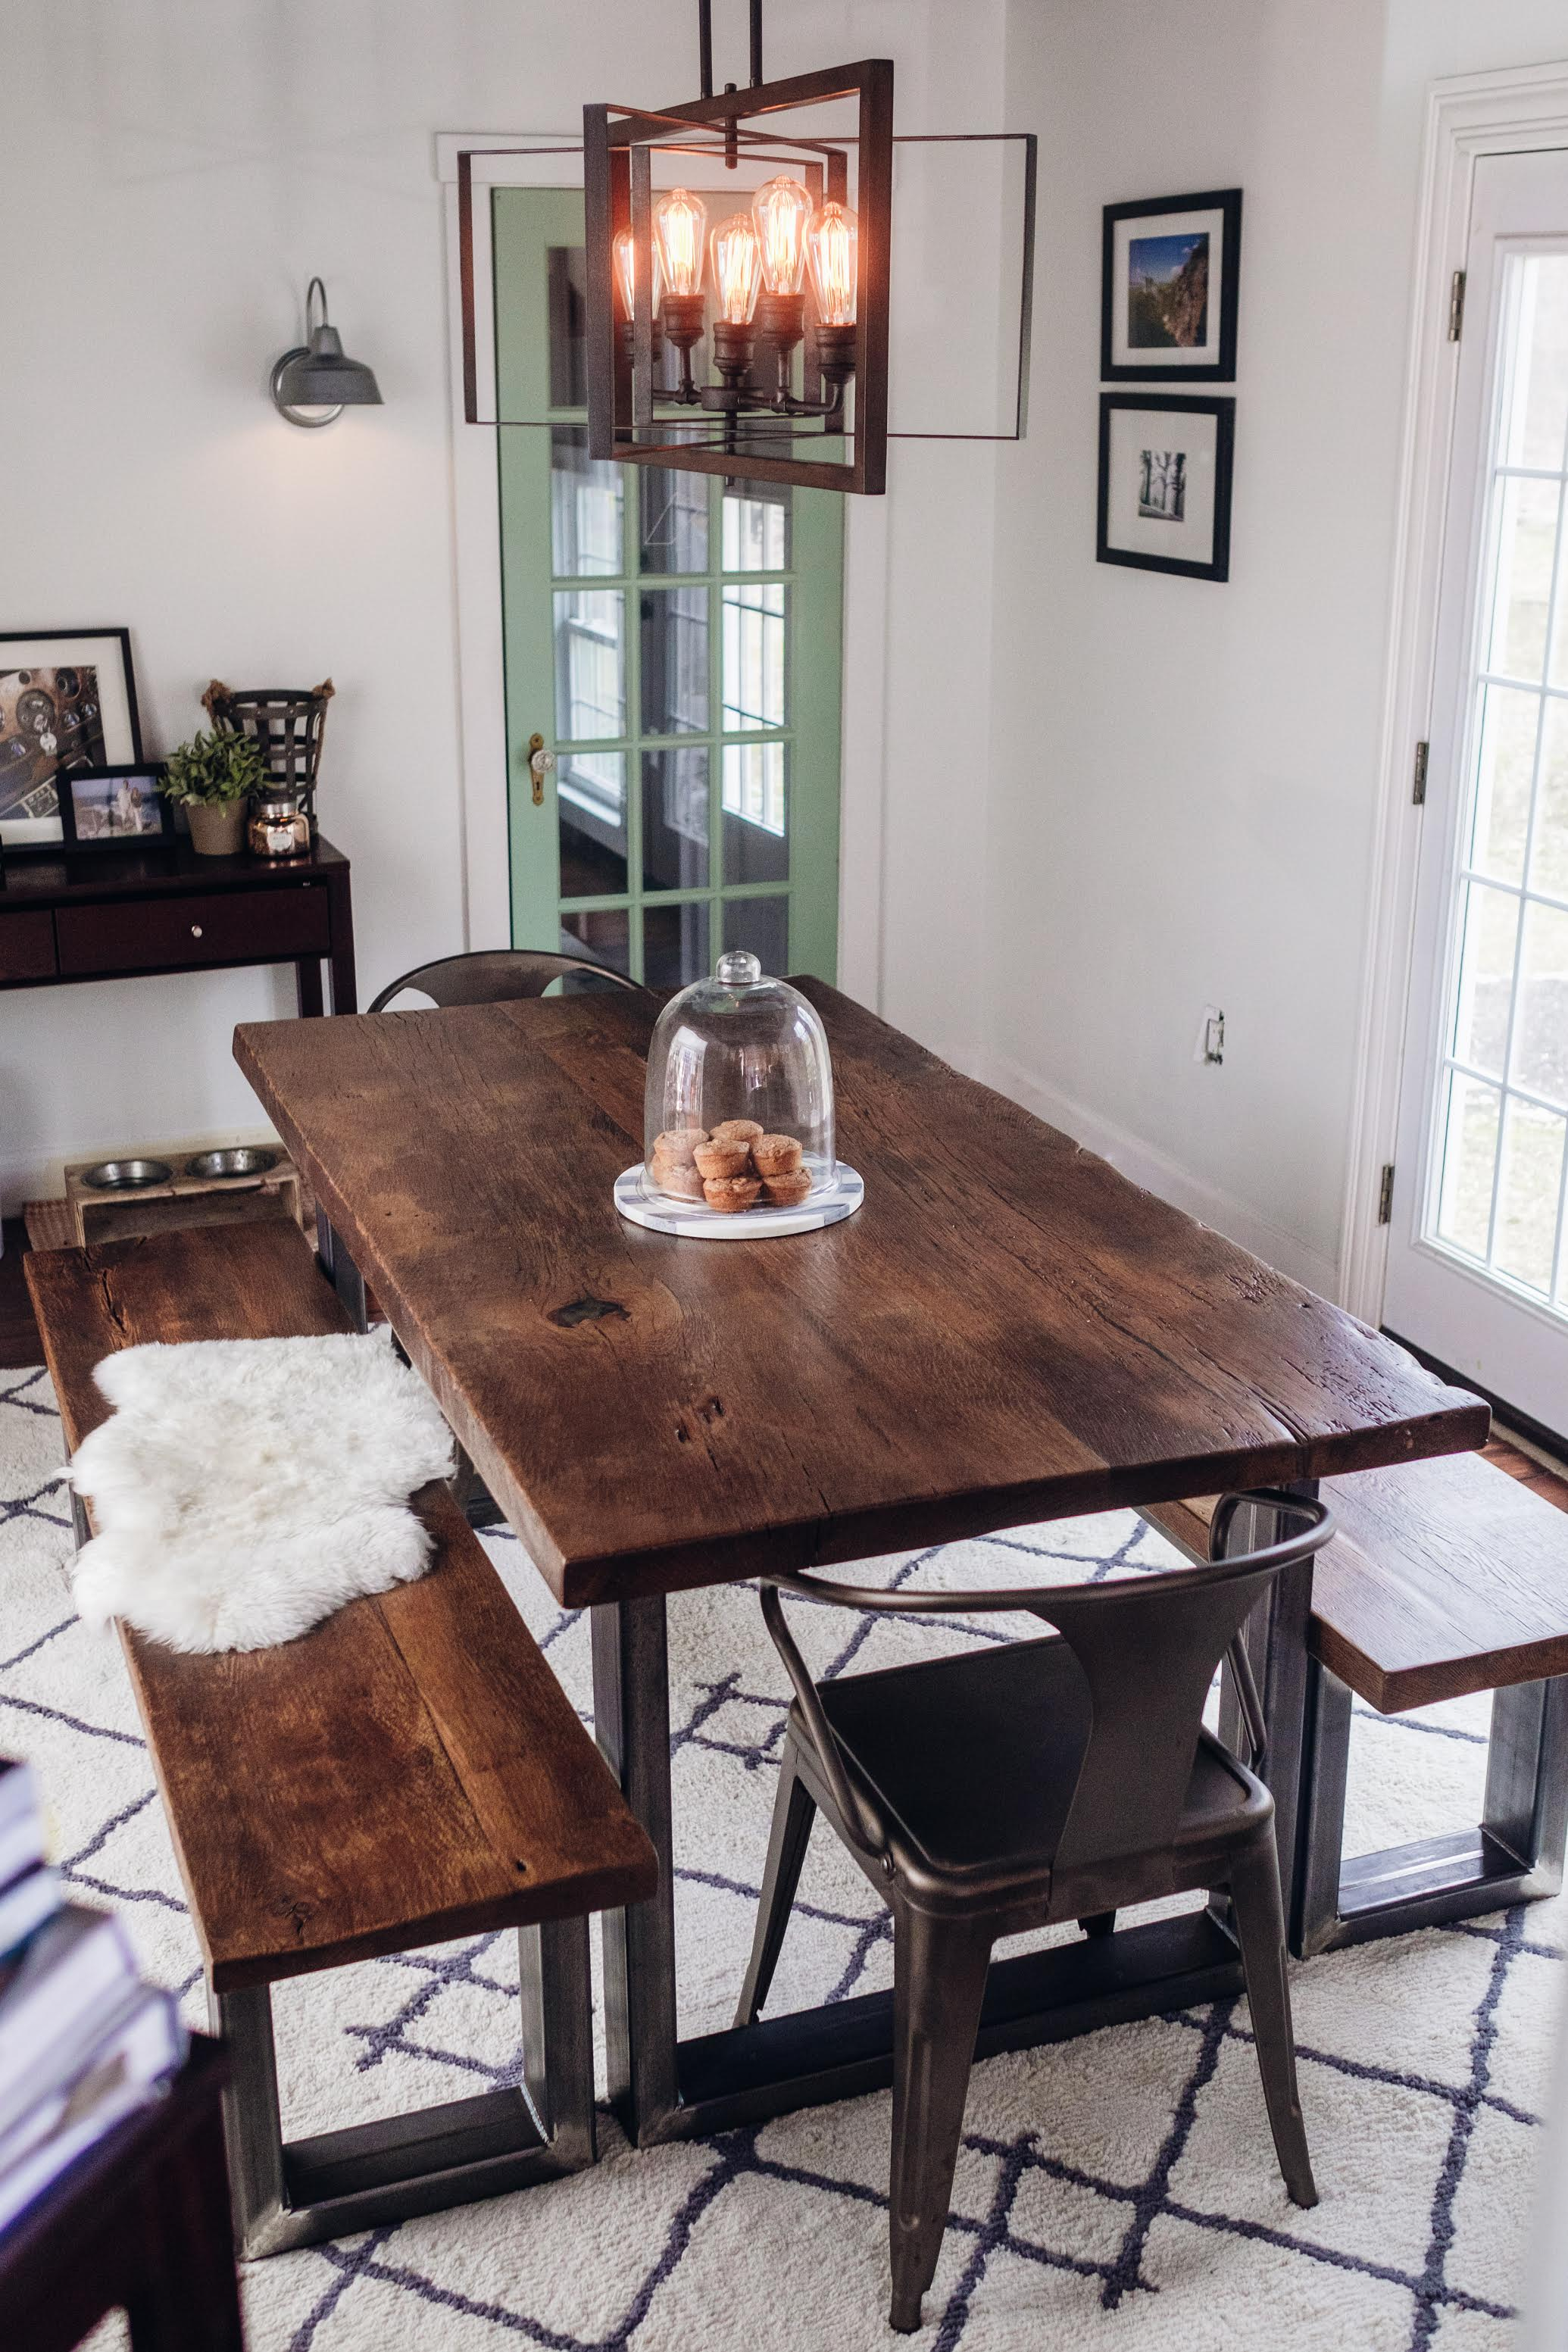 Reclaimed Wood Plank Tables And Countertops Sylvan Brandt